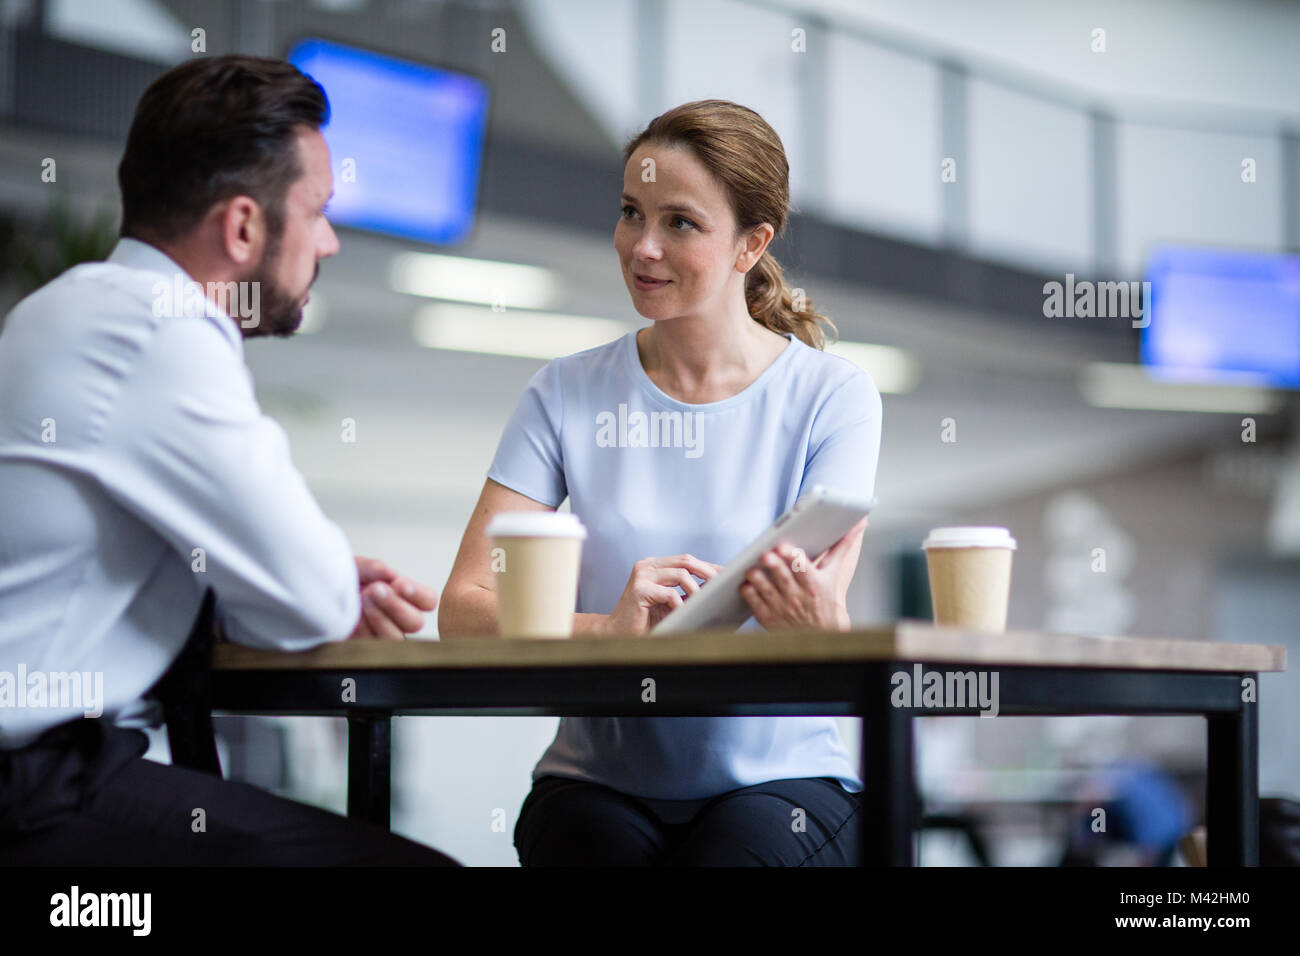 Businesswoman in a meeting using a digital tablet - Stock Image